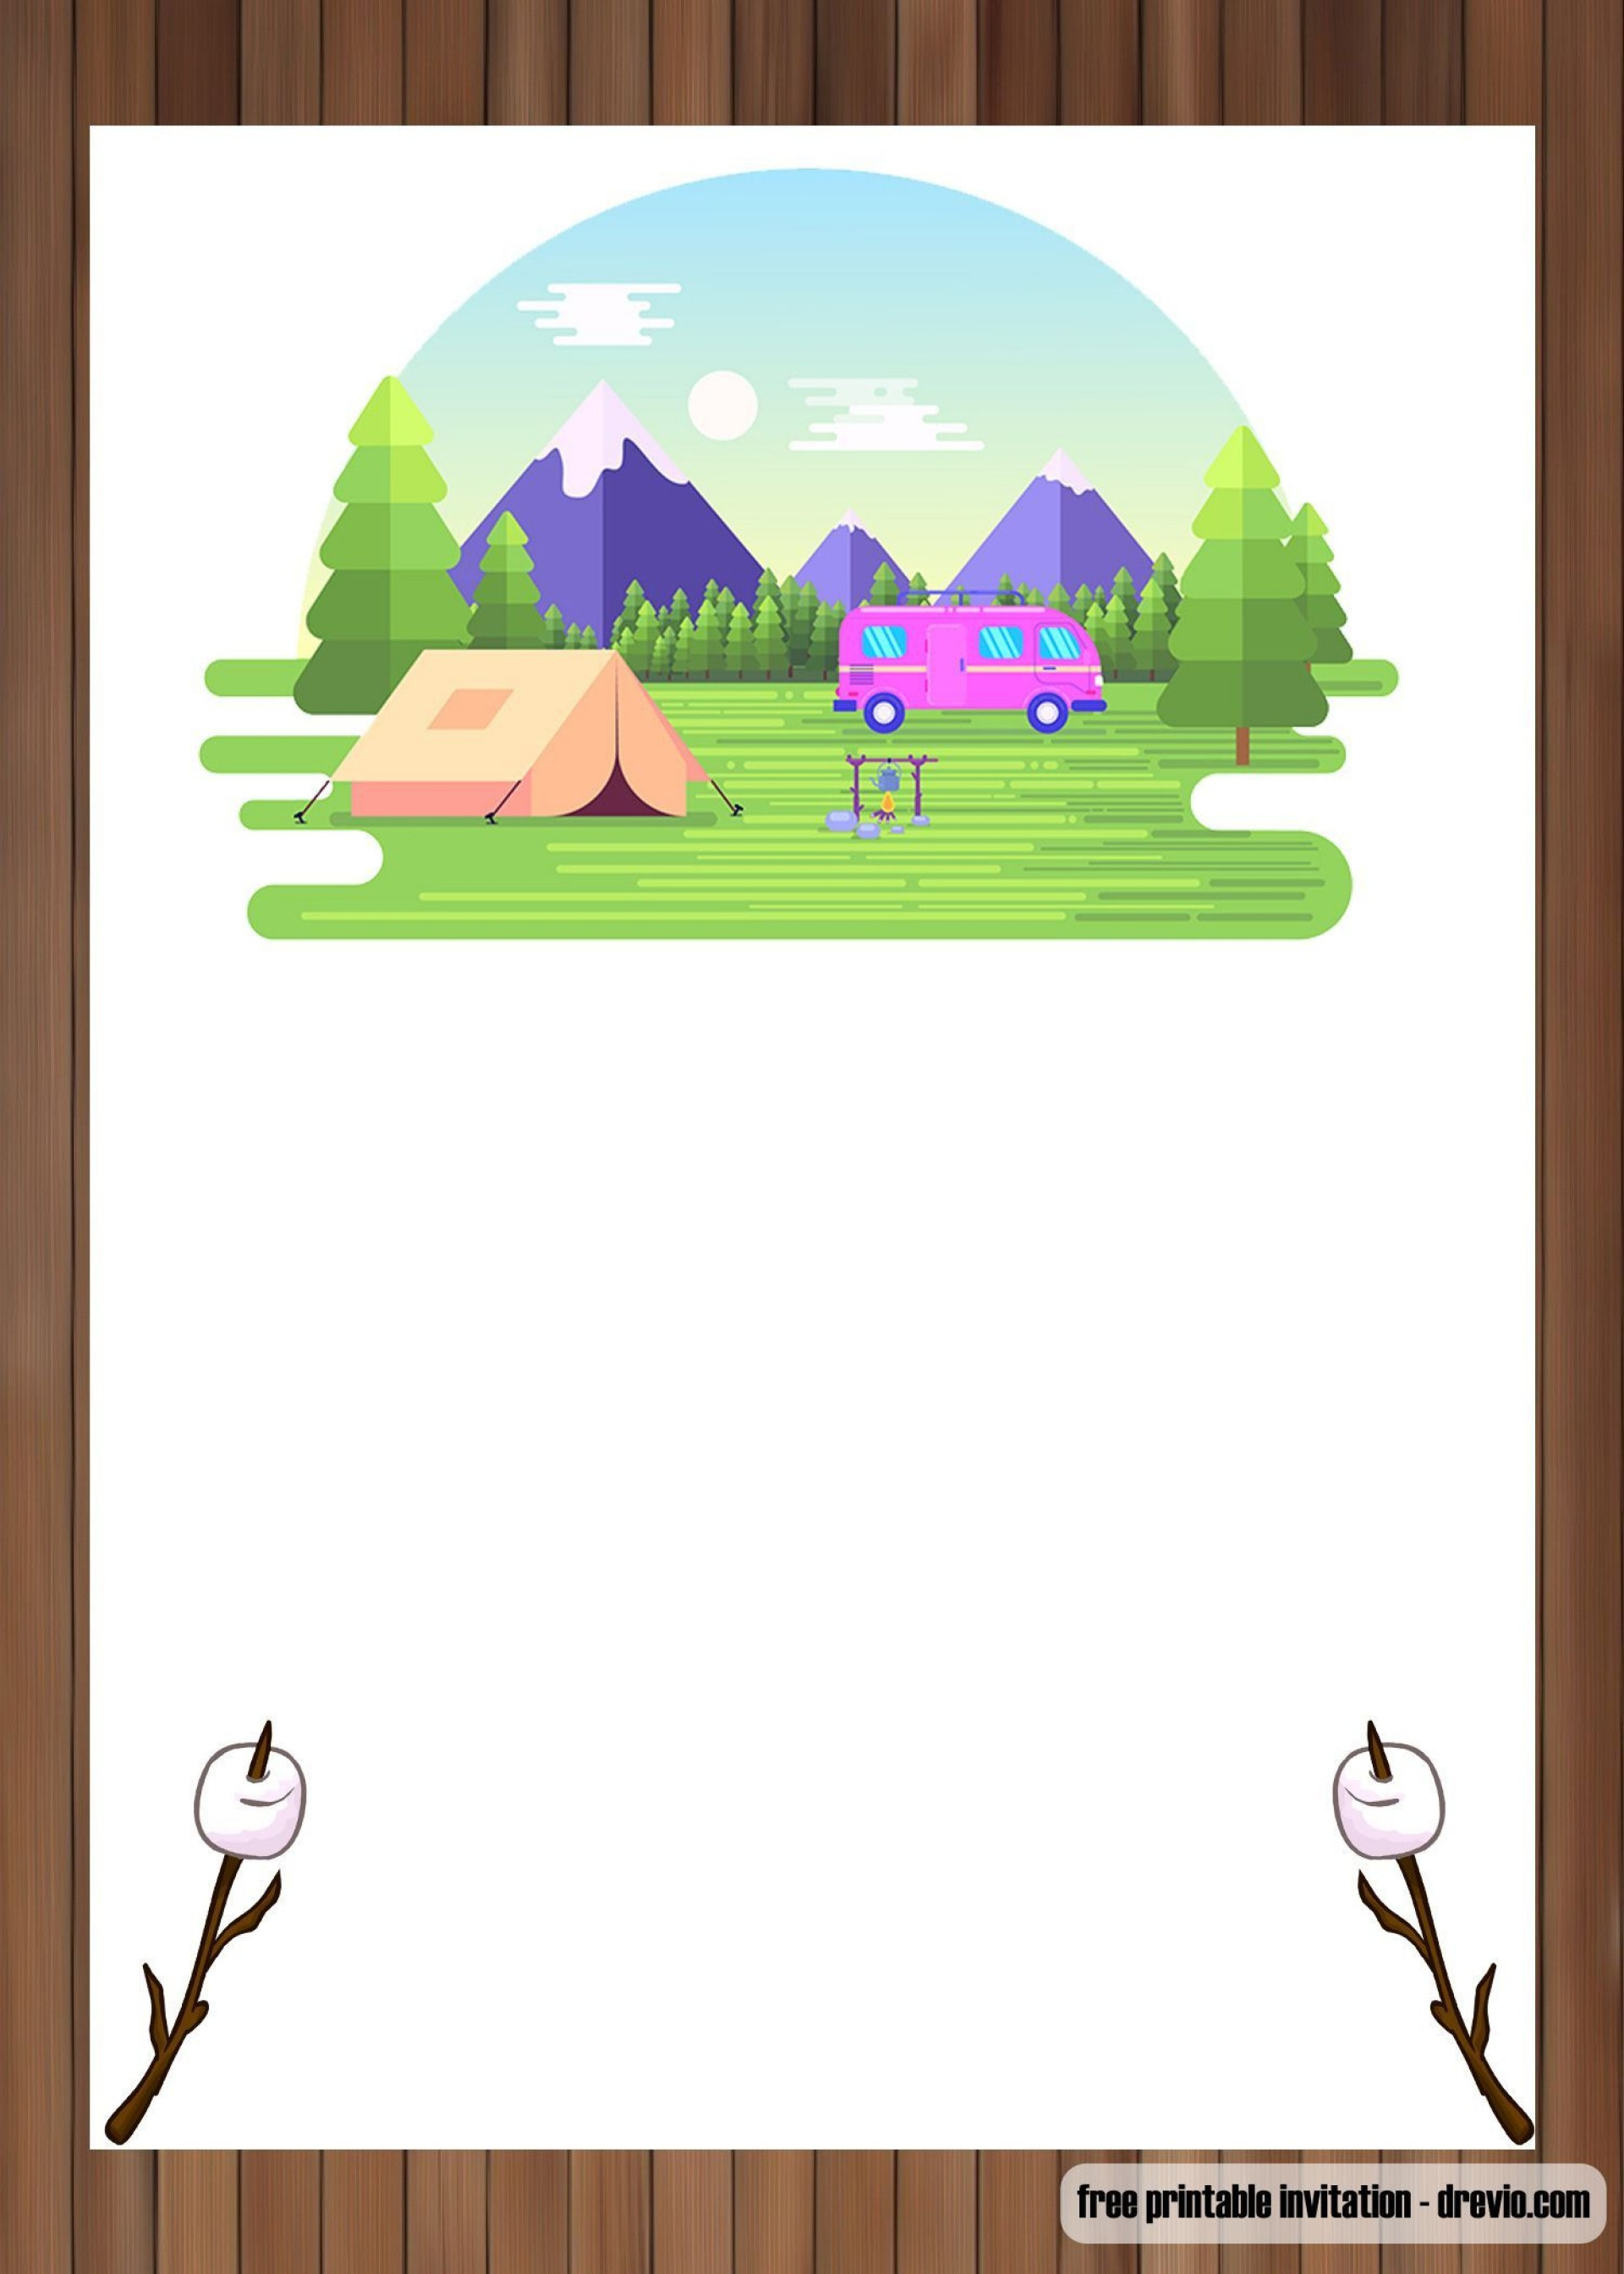 002 Phenomenal Camping Invitation Template Free Concept  Party Birthday1920